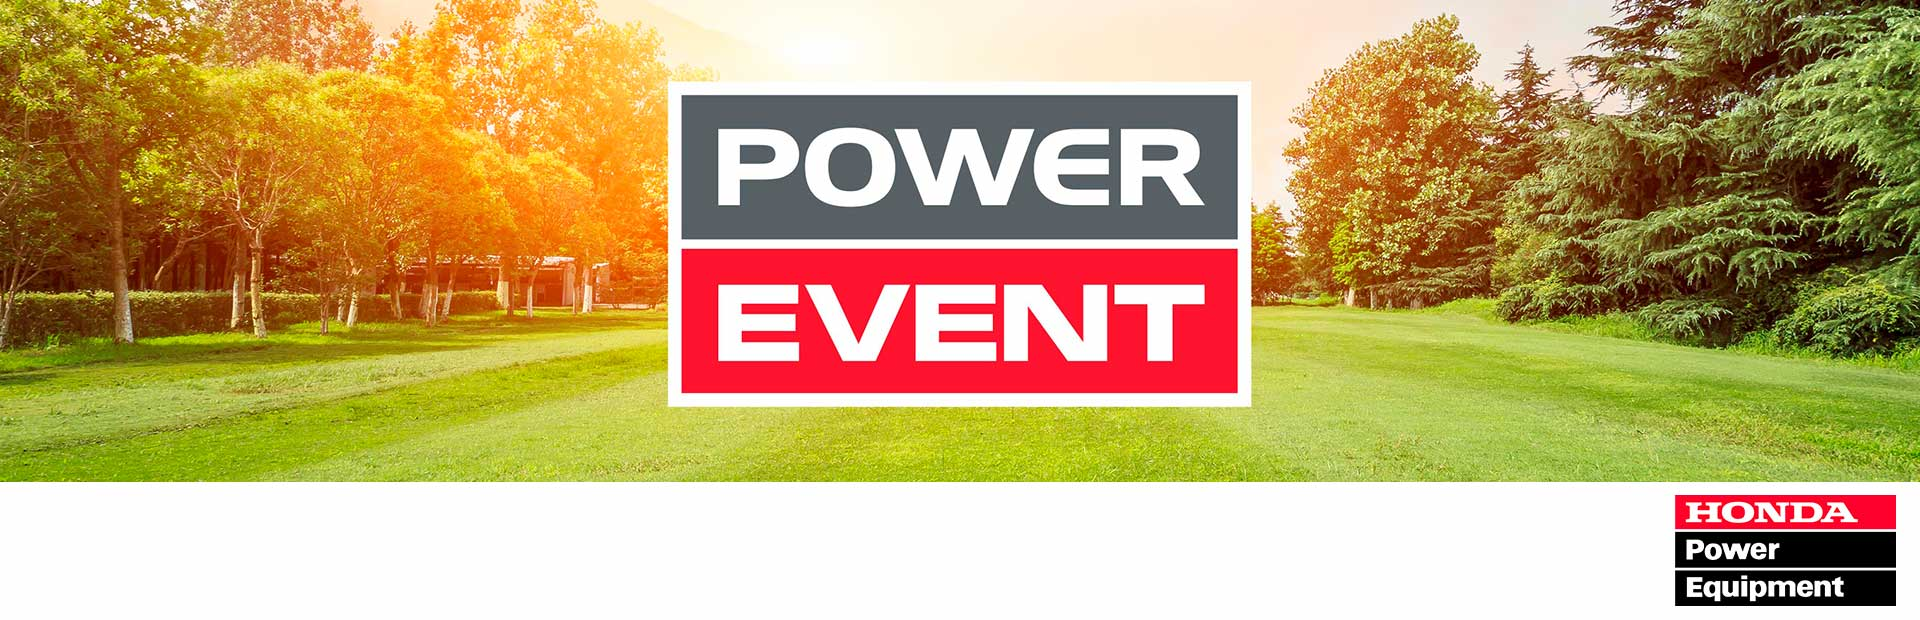 Honda Power Equipment: Power Event